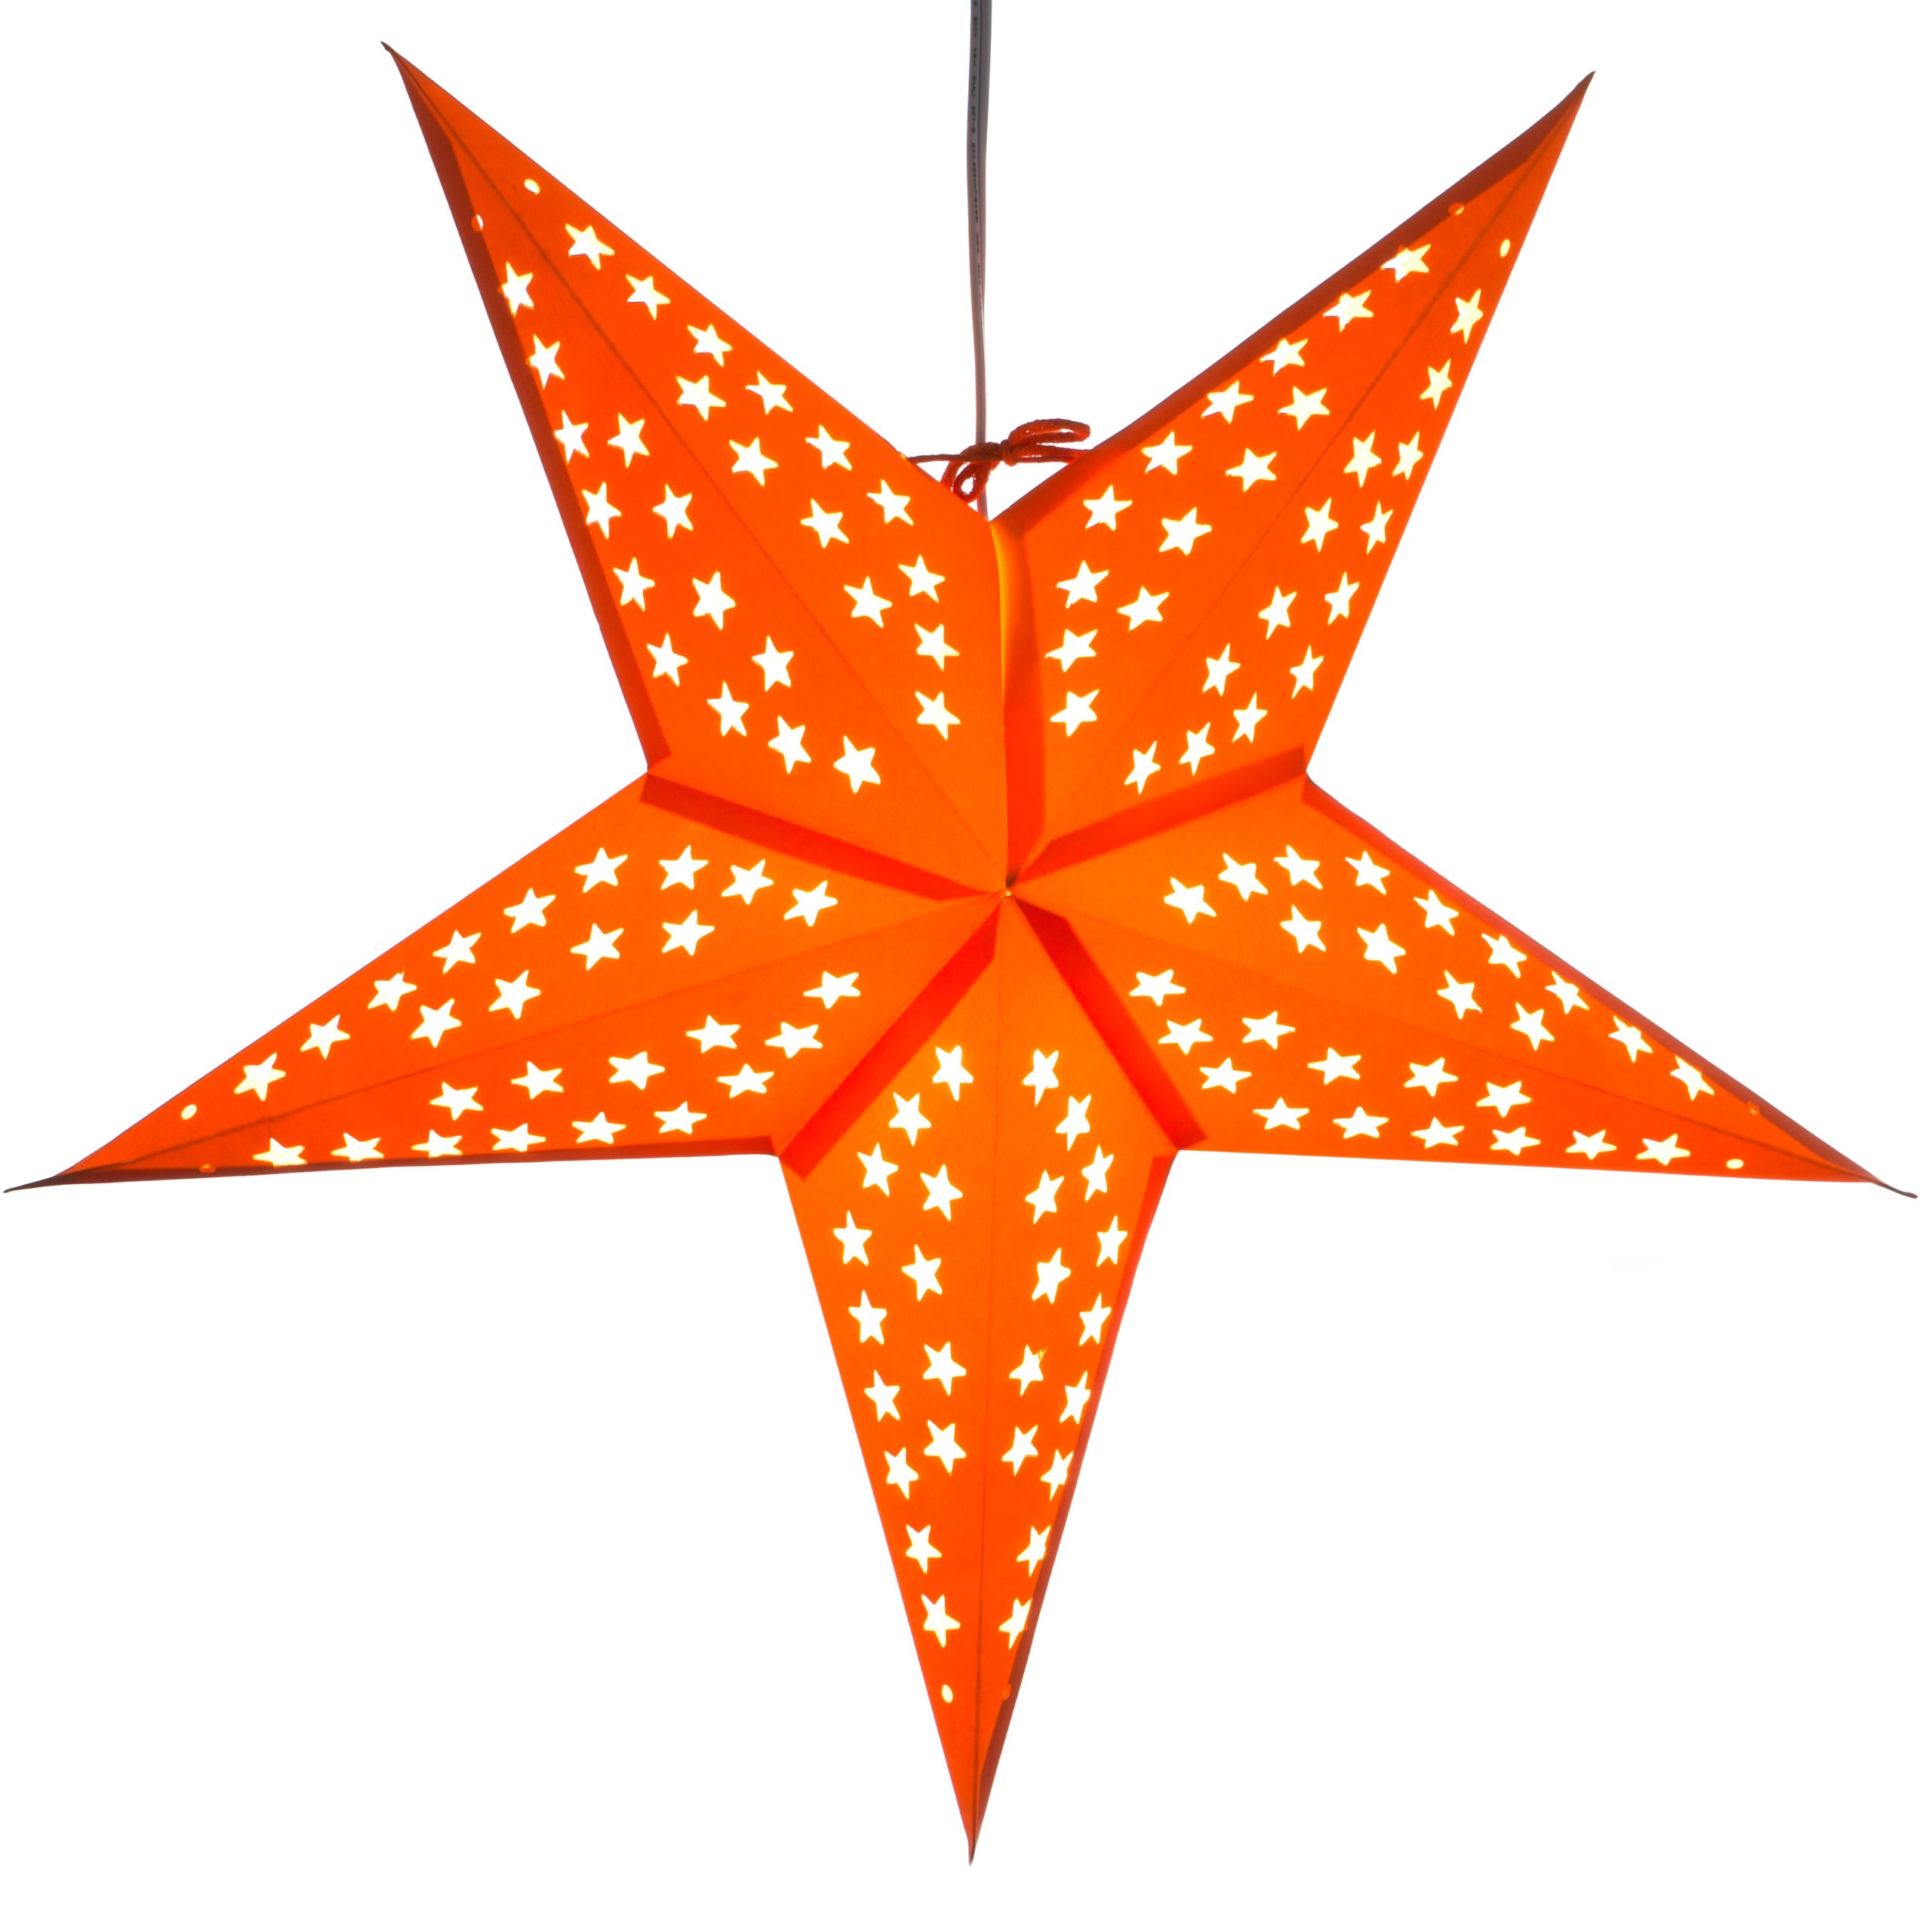 Paper Star Light Lamp Lantern with 12 Foot Power Cord Included (Orange)